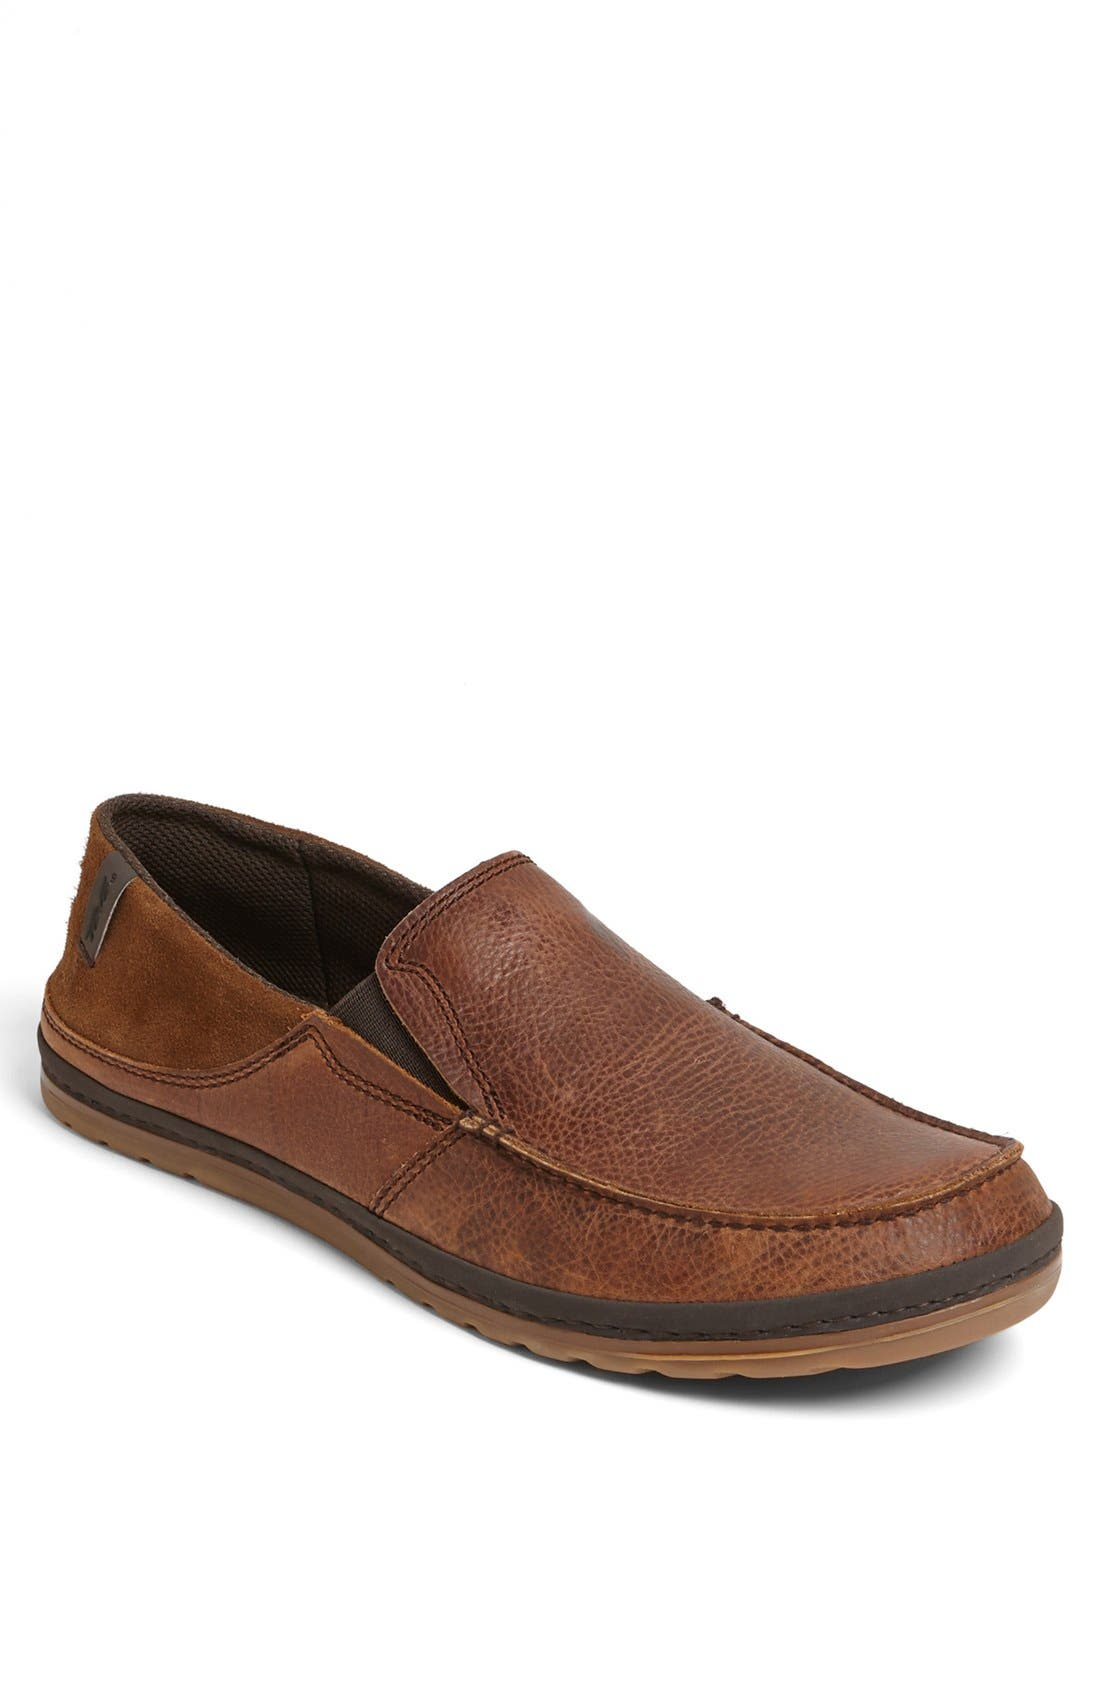 Alternate Image 1 Selected - Teva 'Clifton Creek' Leather Driving Moccasin